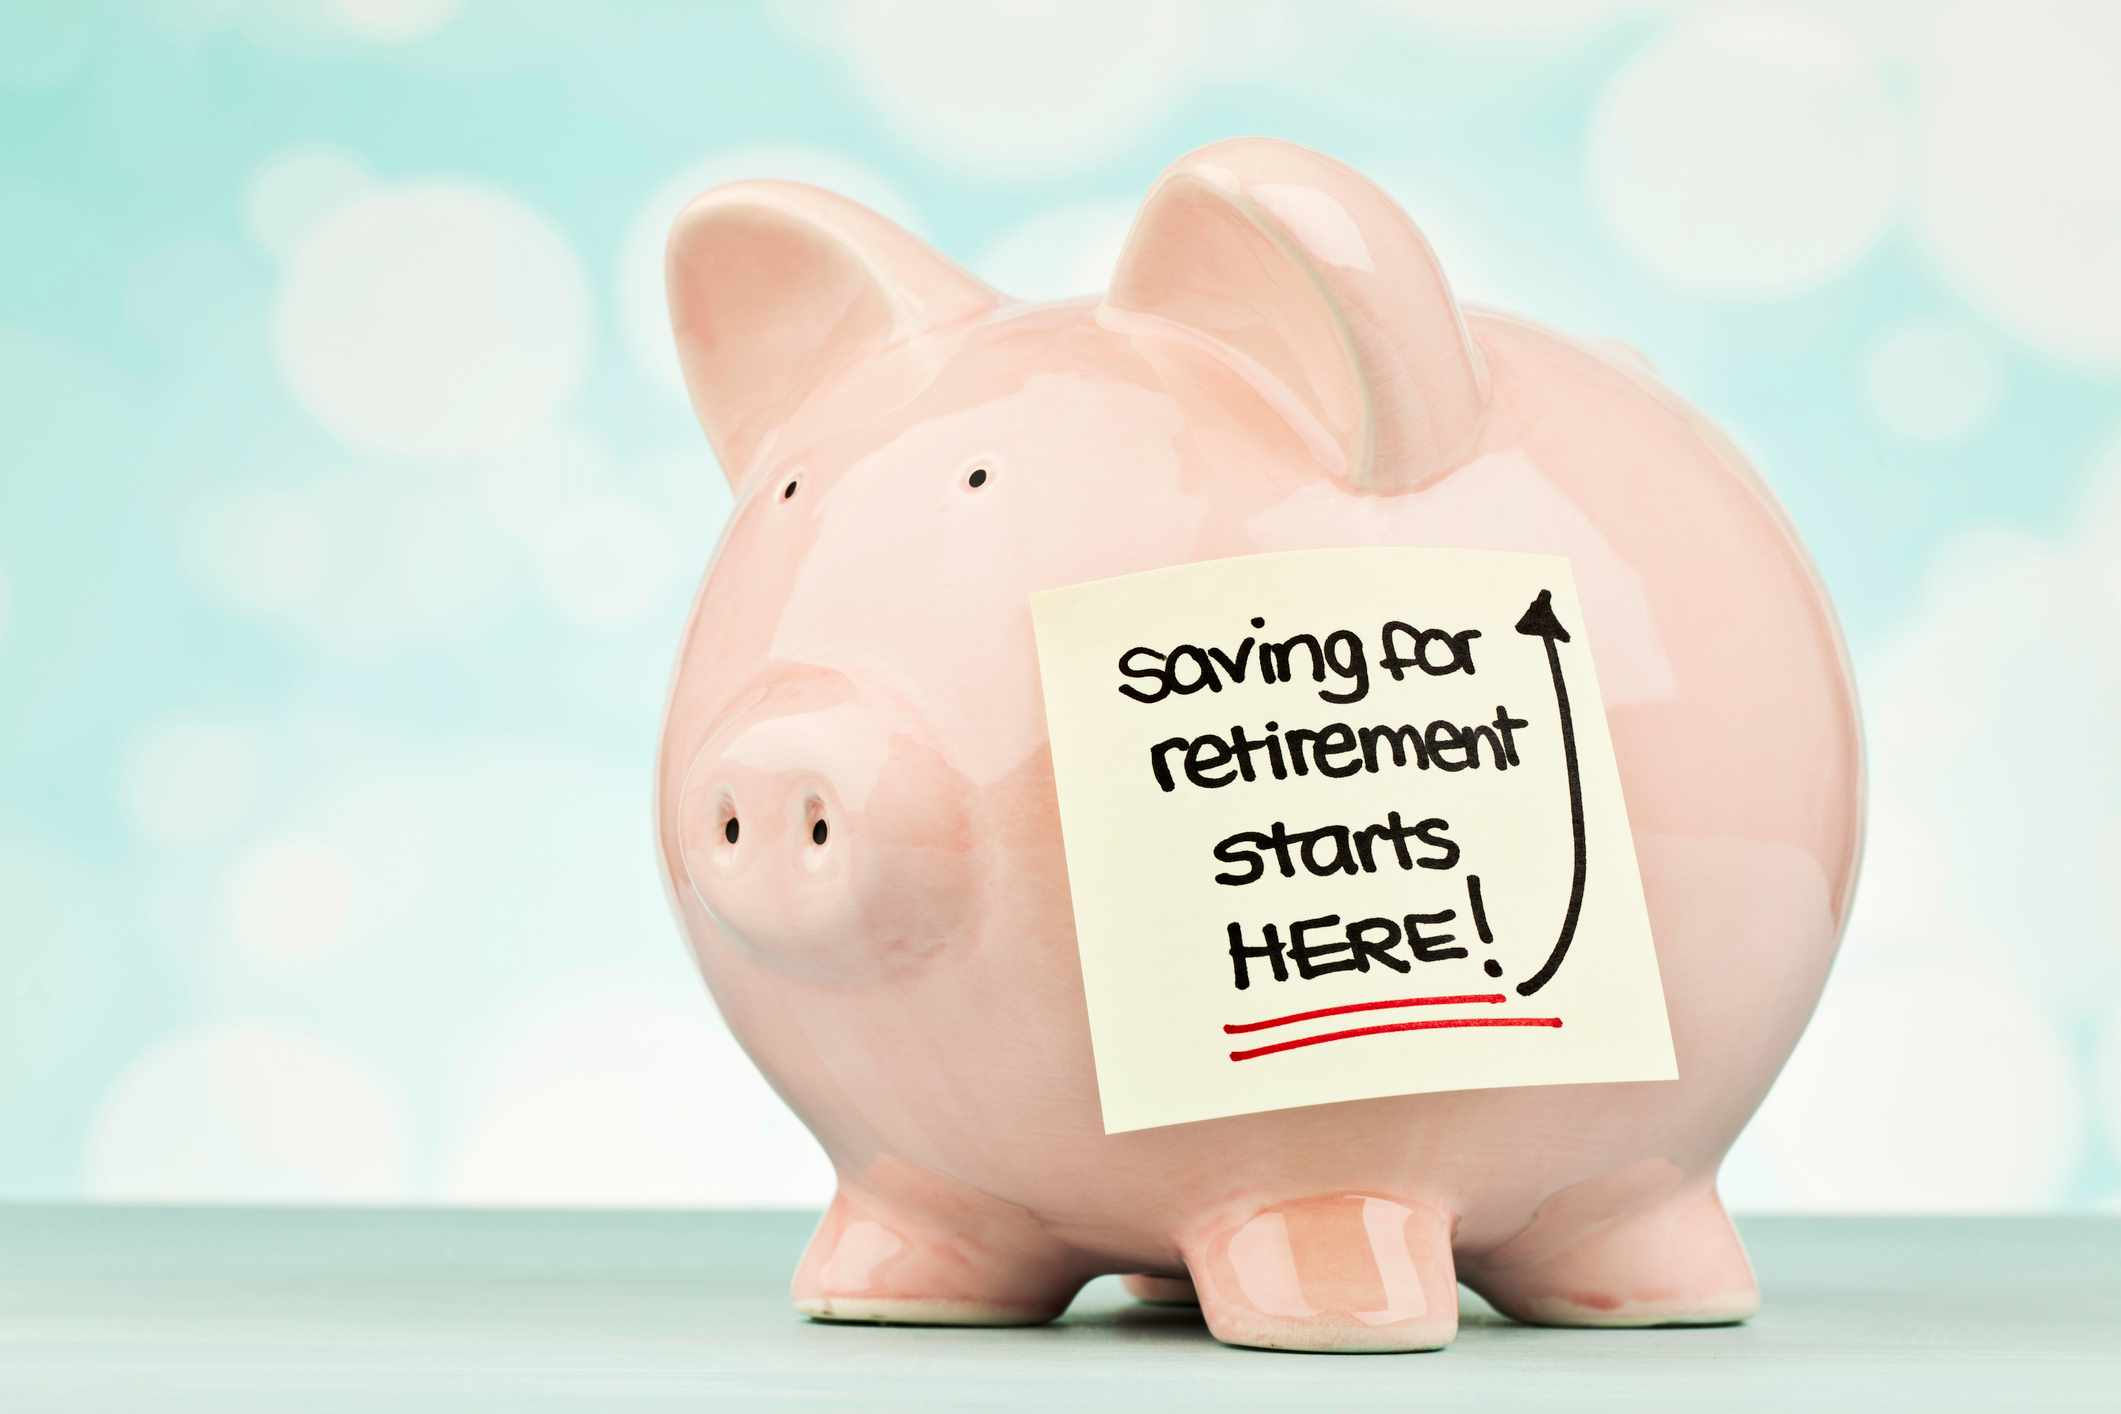 Piggy bank with message promoting saving for retirement